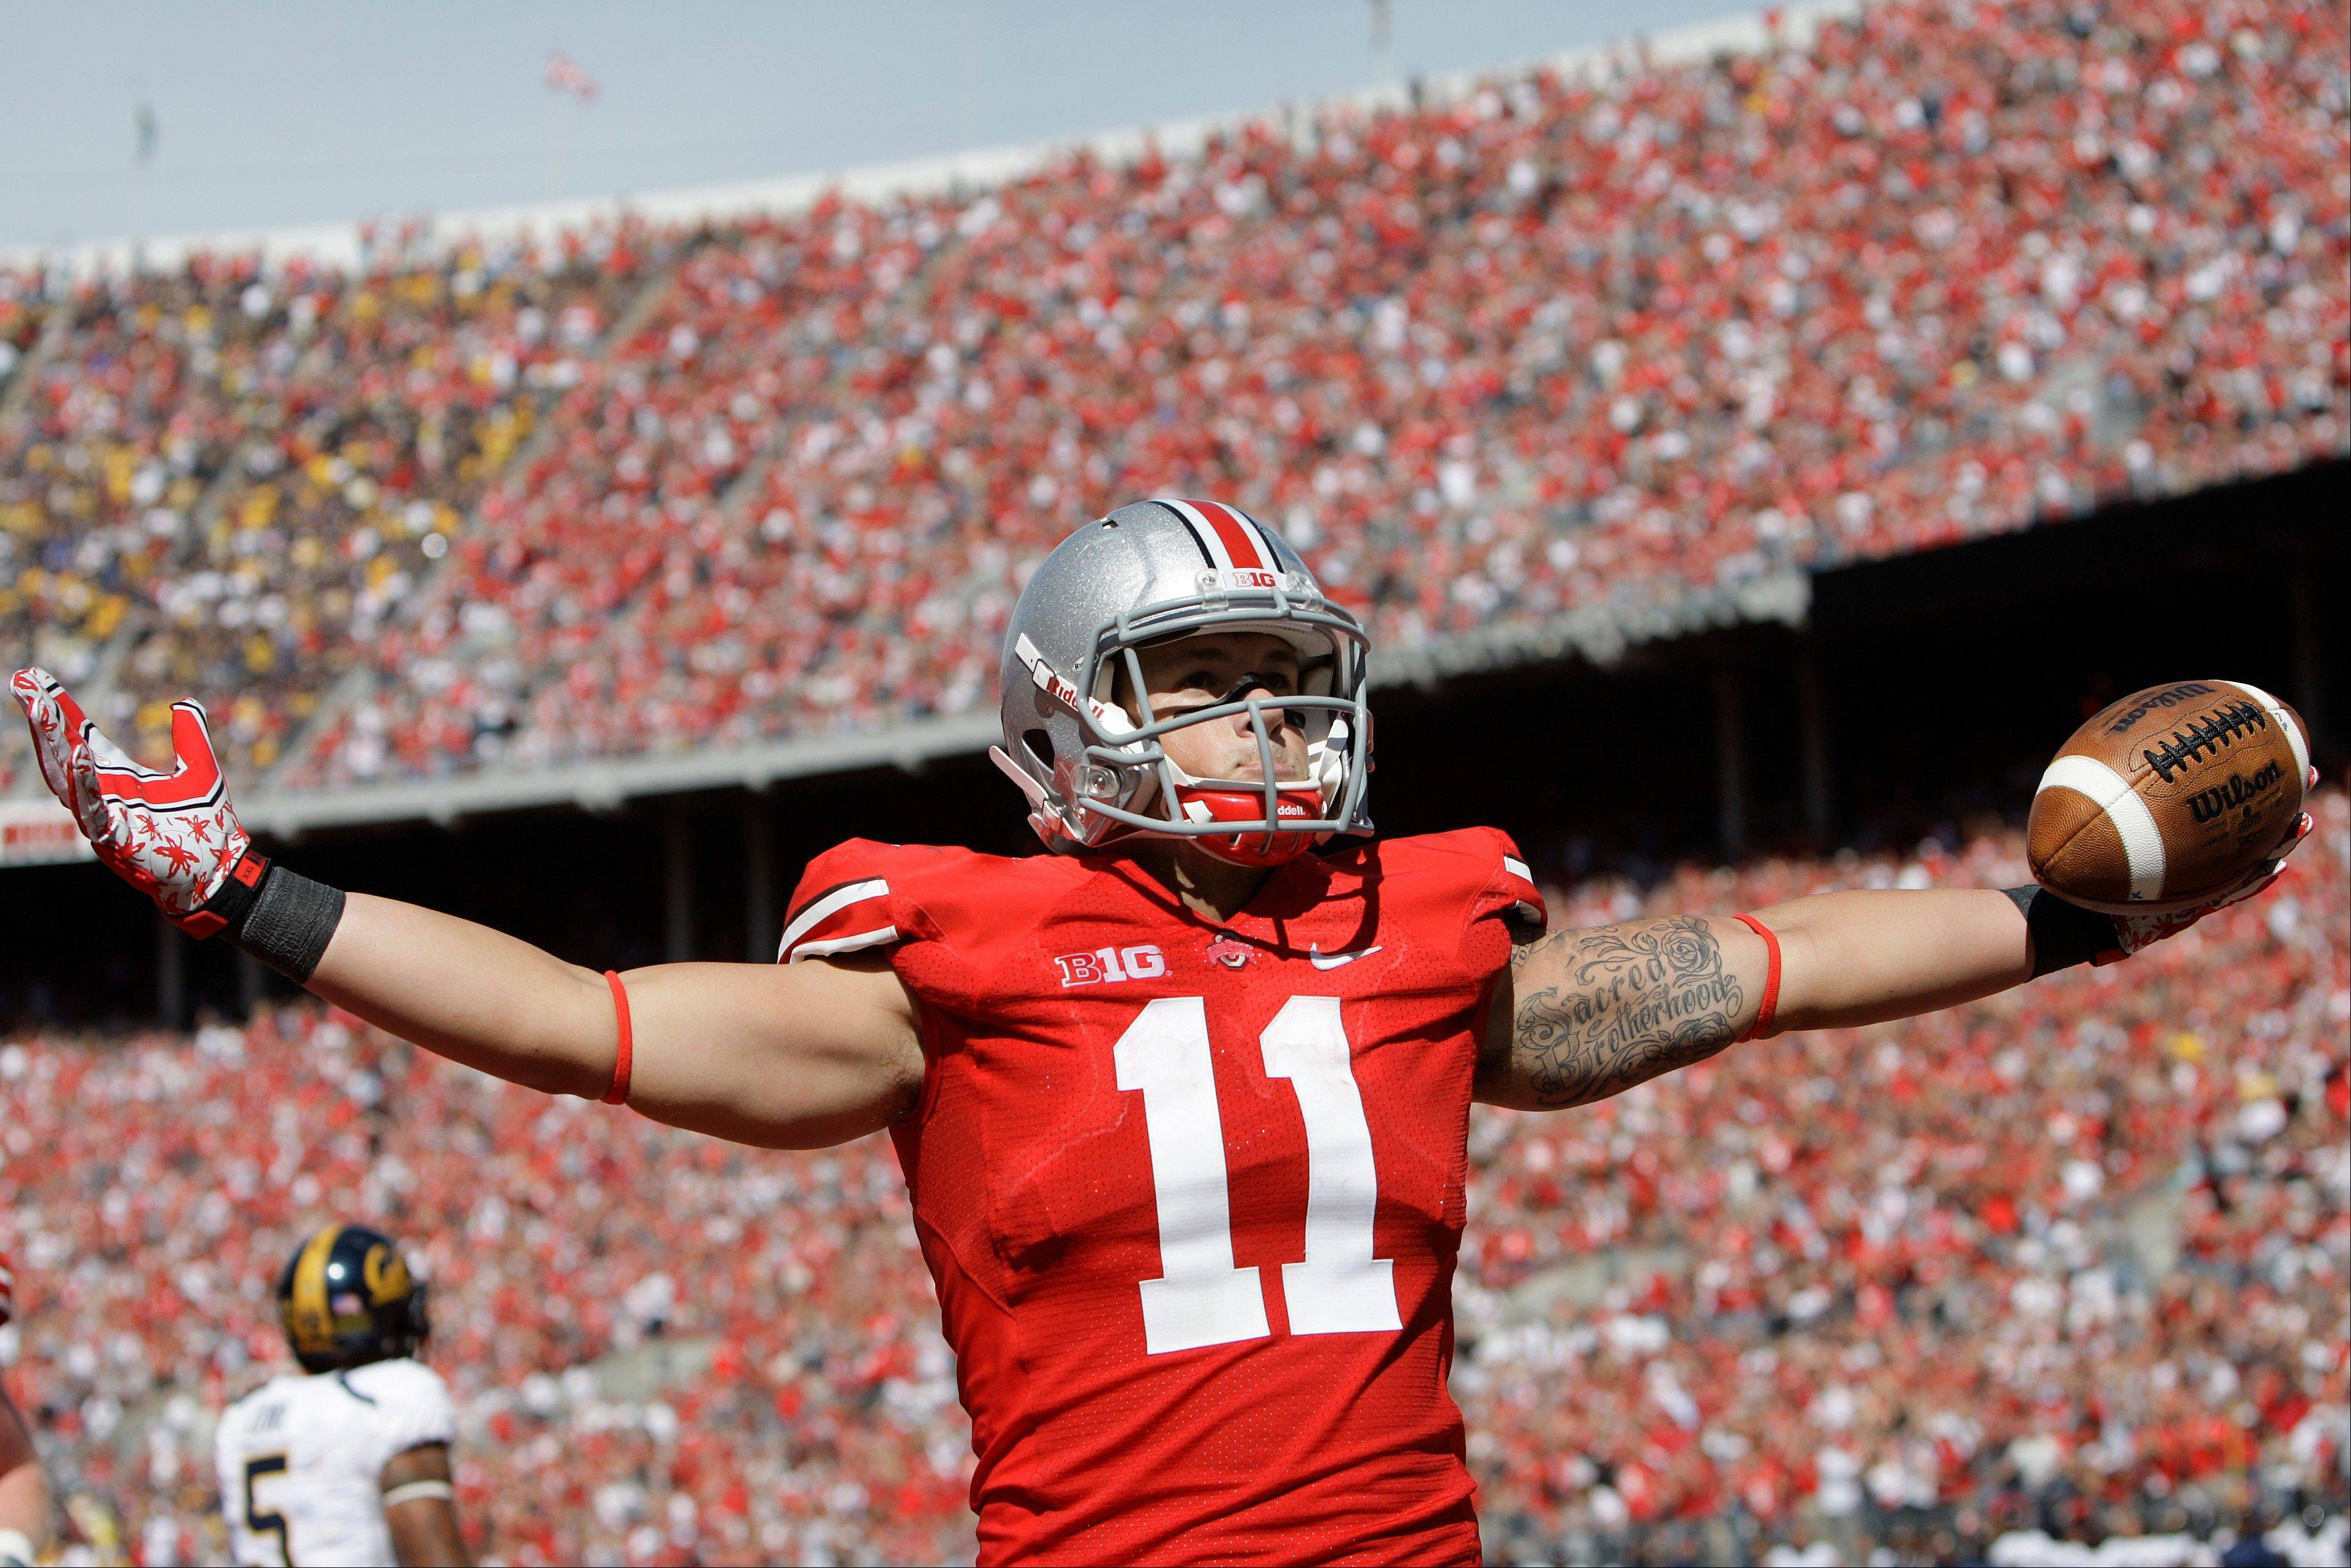 Ohio State's Jake Stoneburner celebrates his touchdown against California during the fourth quarter of last Saturday's game in Columbus, Ohio. Ohio State beat Cal 35-28.